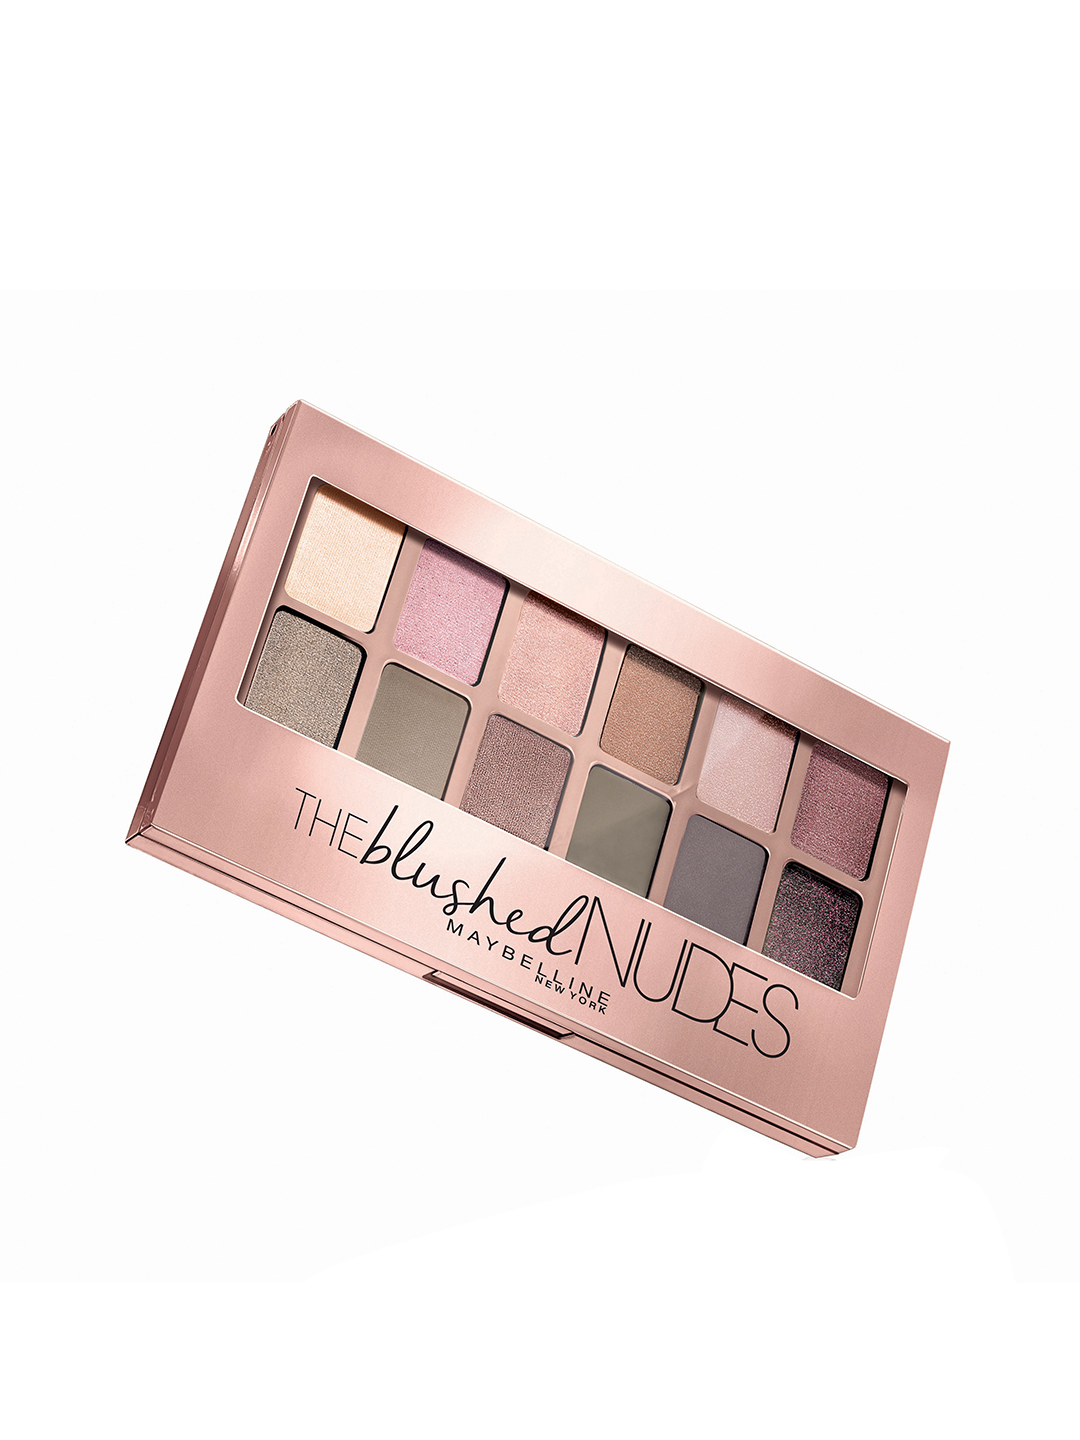 Maybelline The Blushed Nudes Palette 9 g Price in India